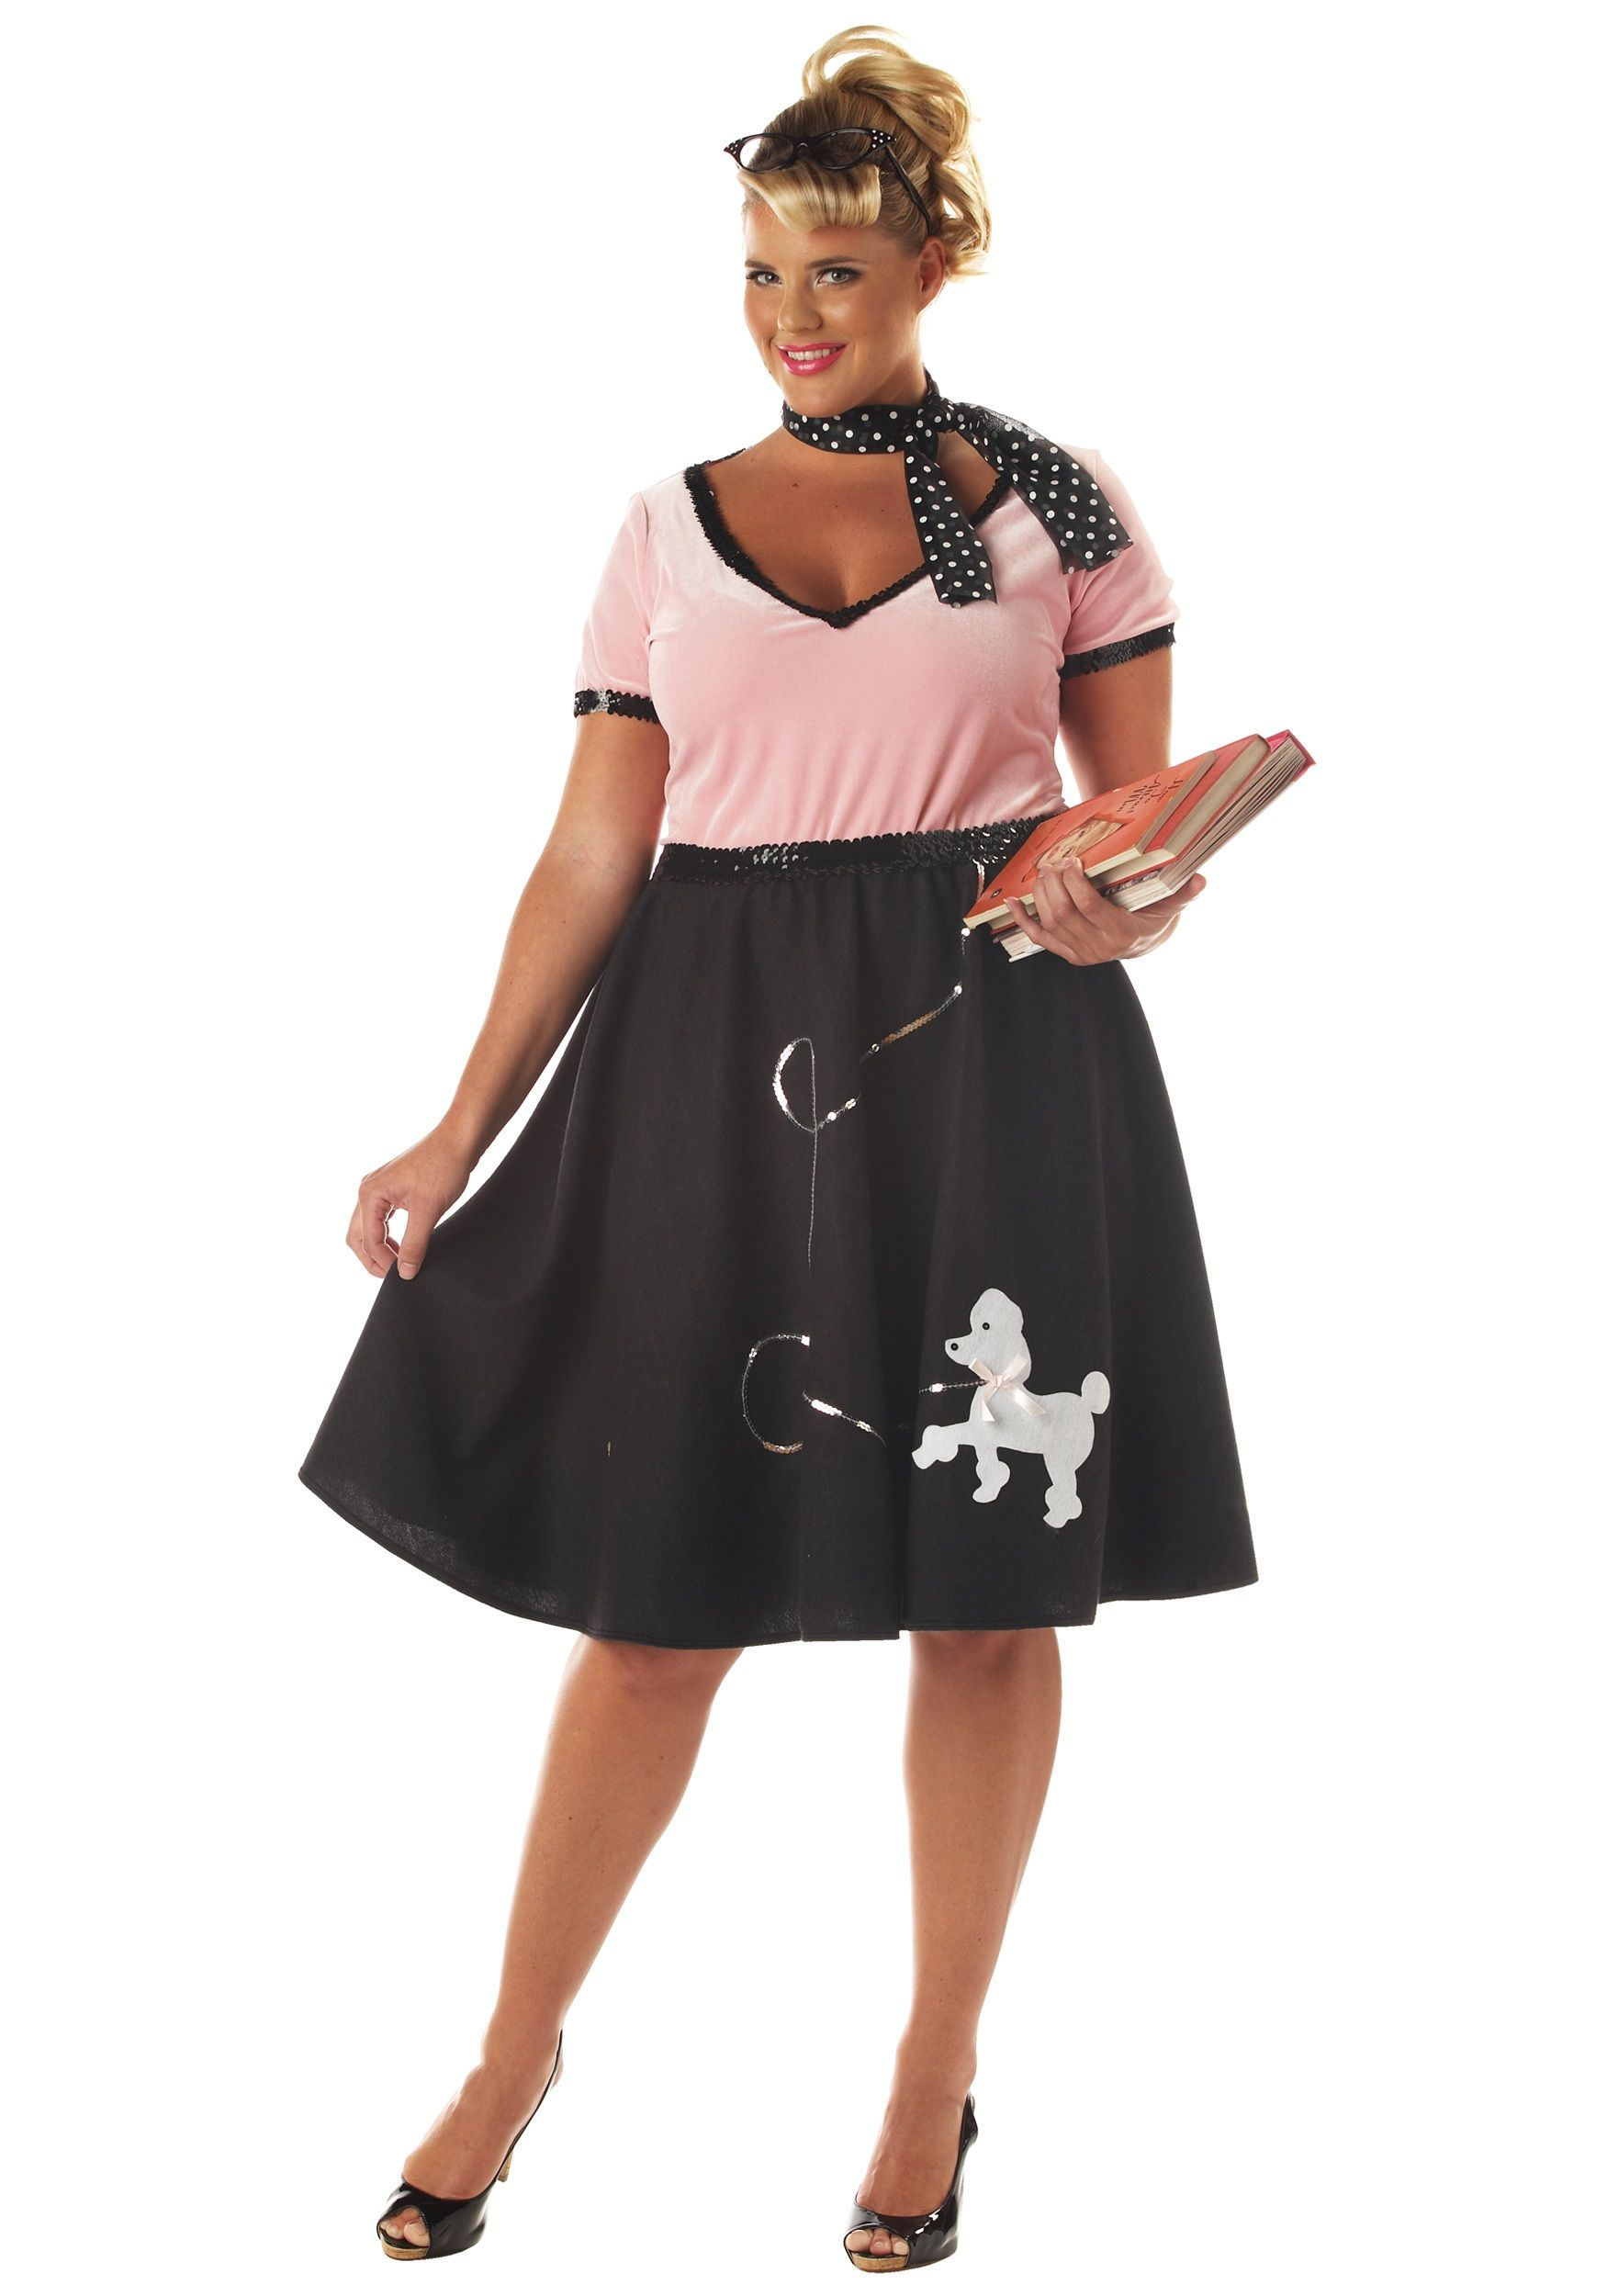 c249a0d141729 Plus Size Halloween Costumes | Plus Size 50s Poodle Skirt Costume ...